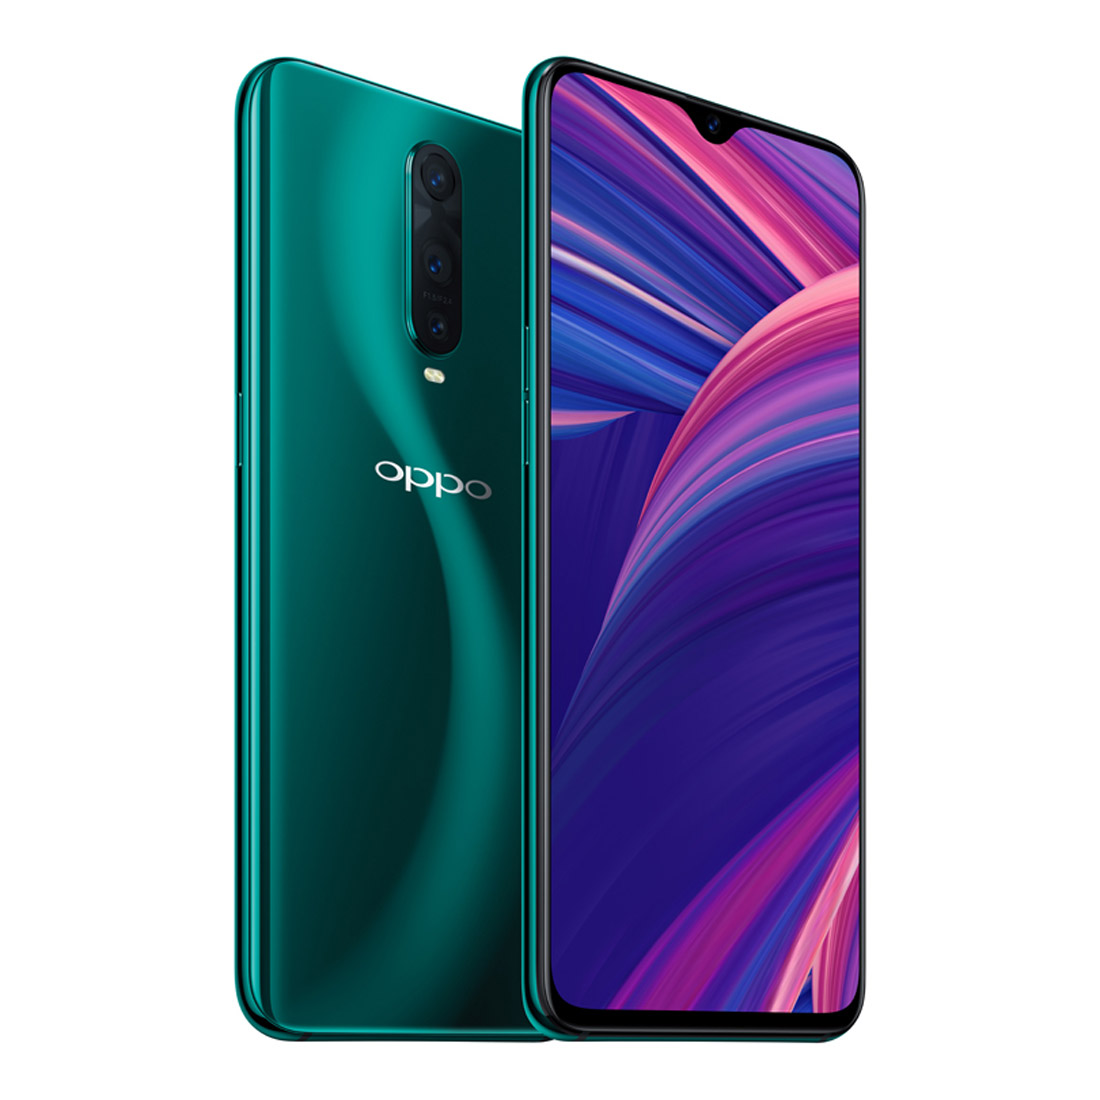 [CPO - As New] OPPO R17 Pro (Dual SIM 4G/3G, 128GB/6GB) - Emerald Green